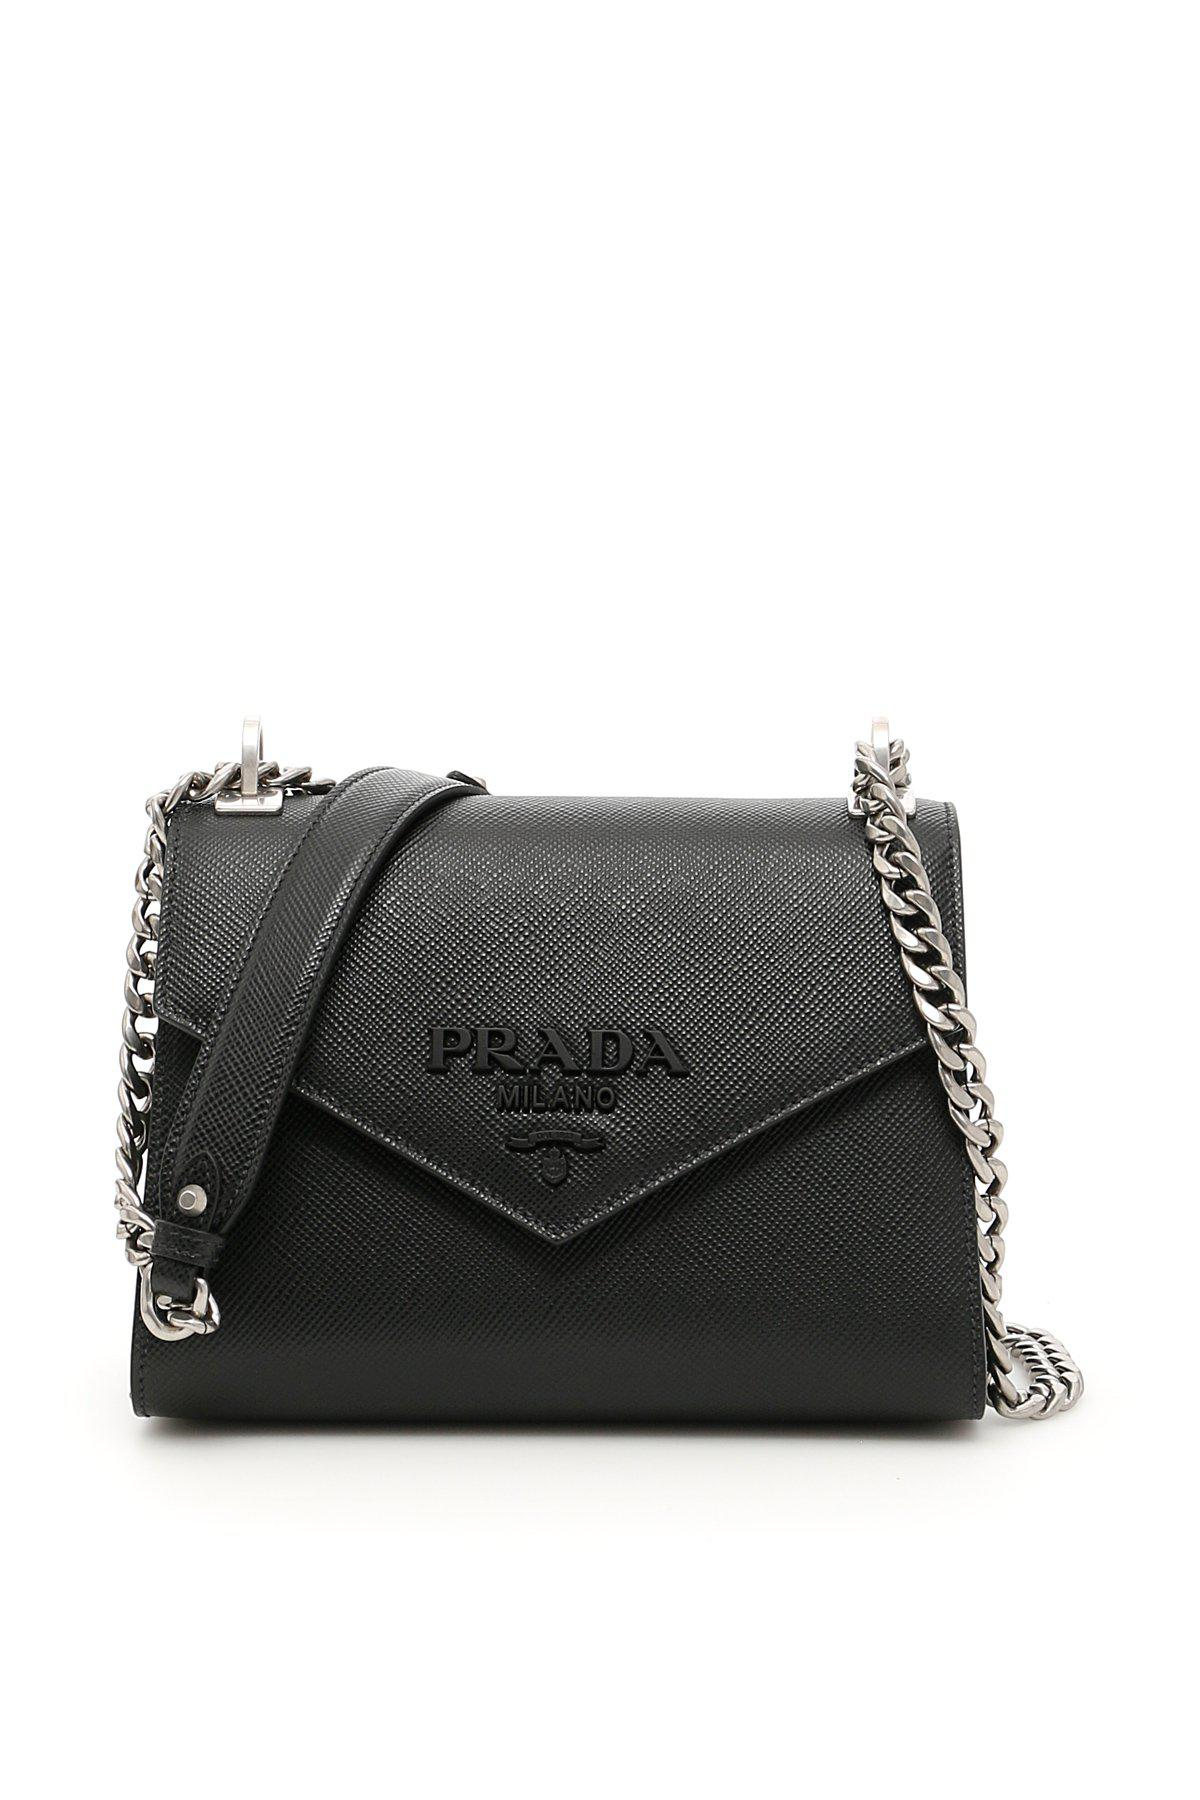 ffabebe077c1 Gallery. Previously sold at  Cettire · Women s Chain Strap Bags ...